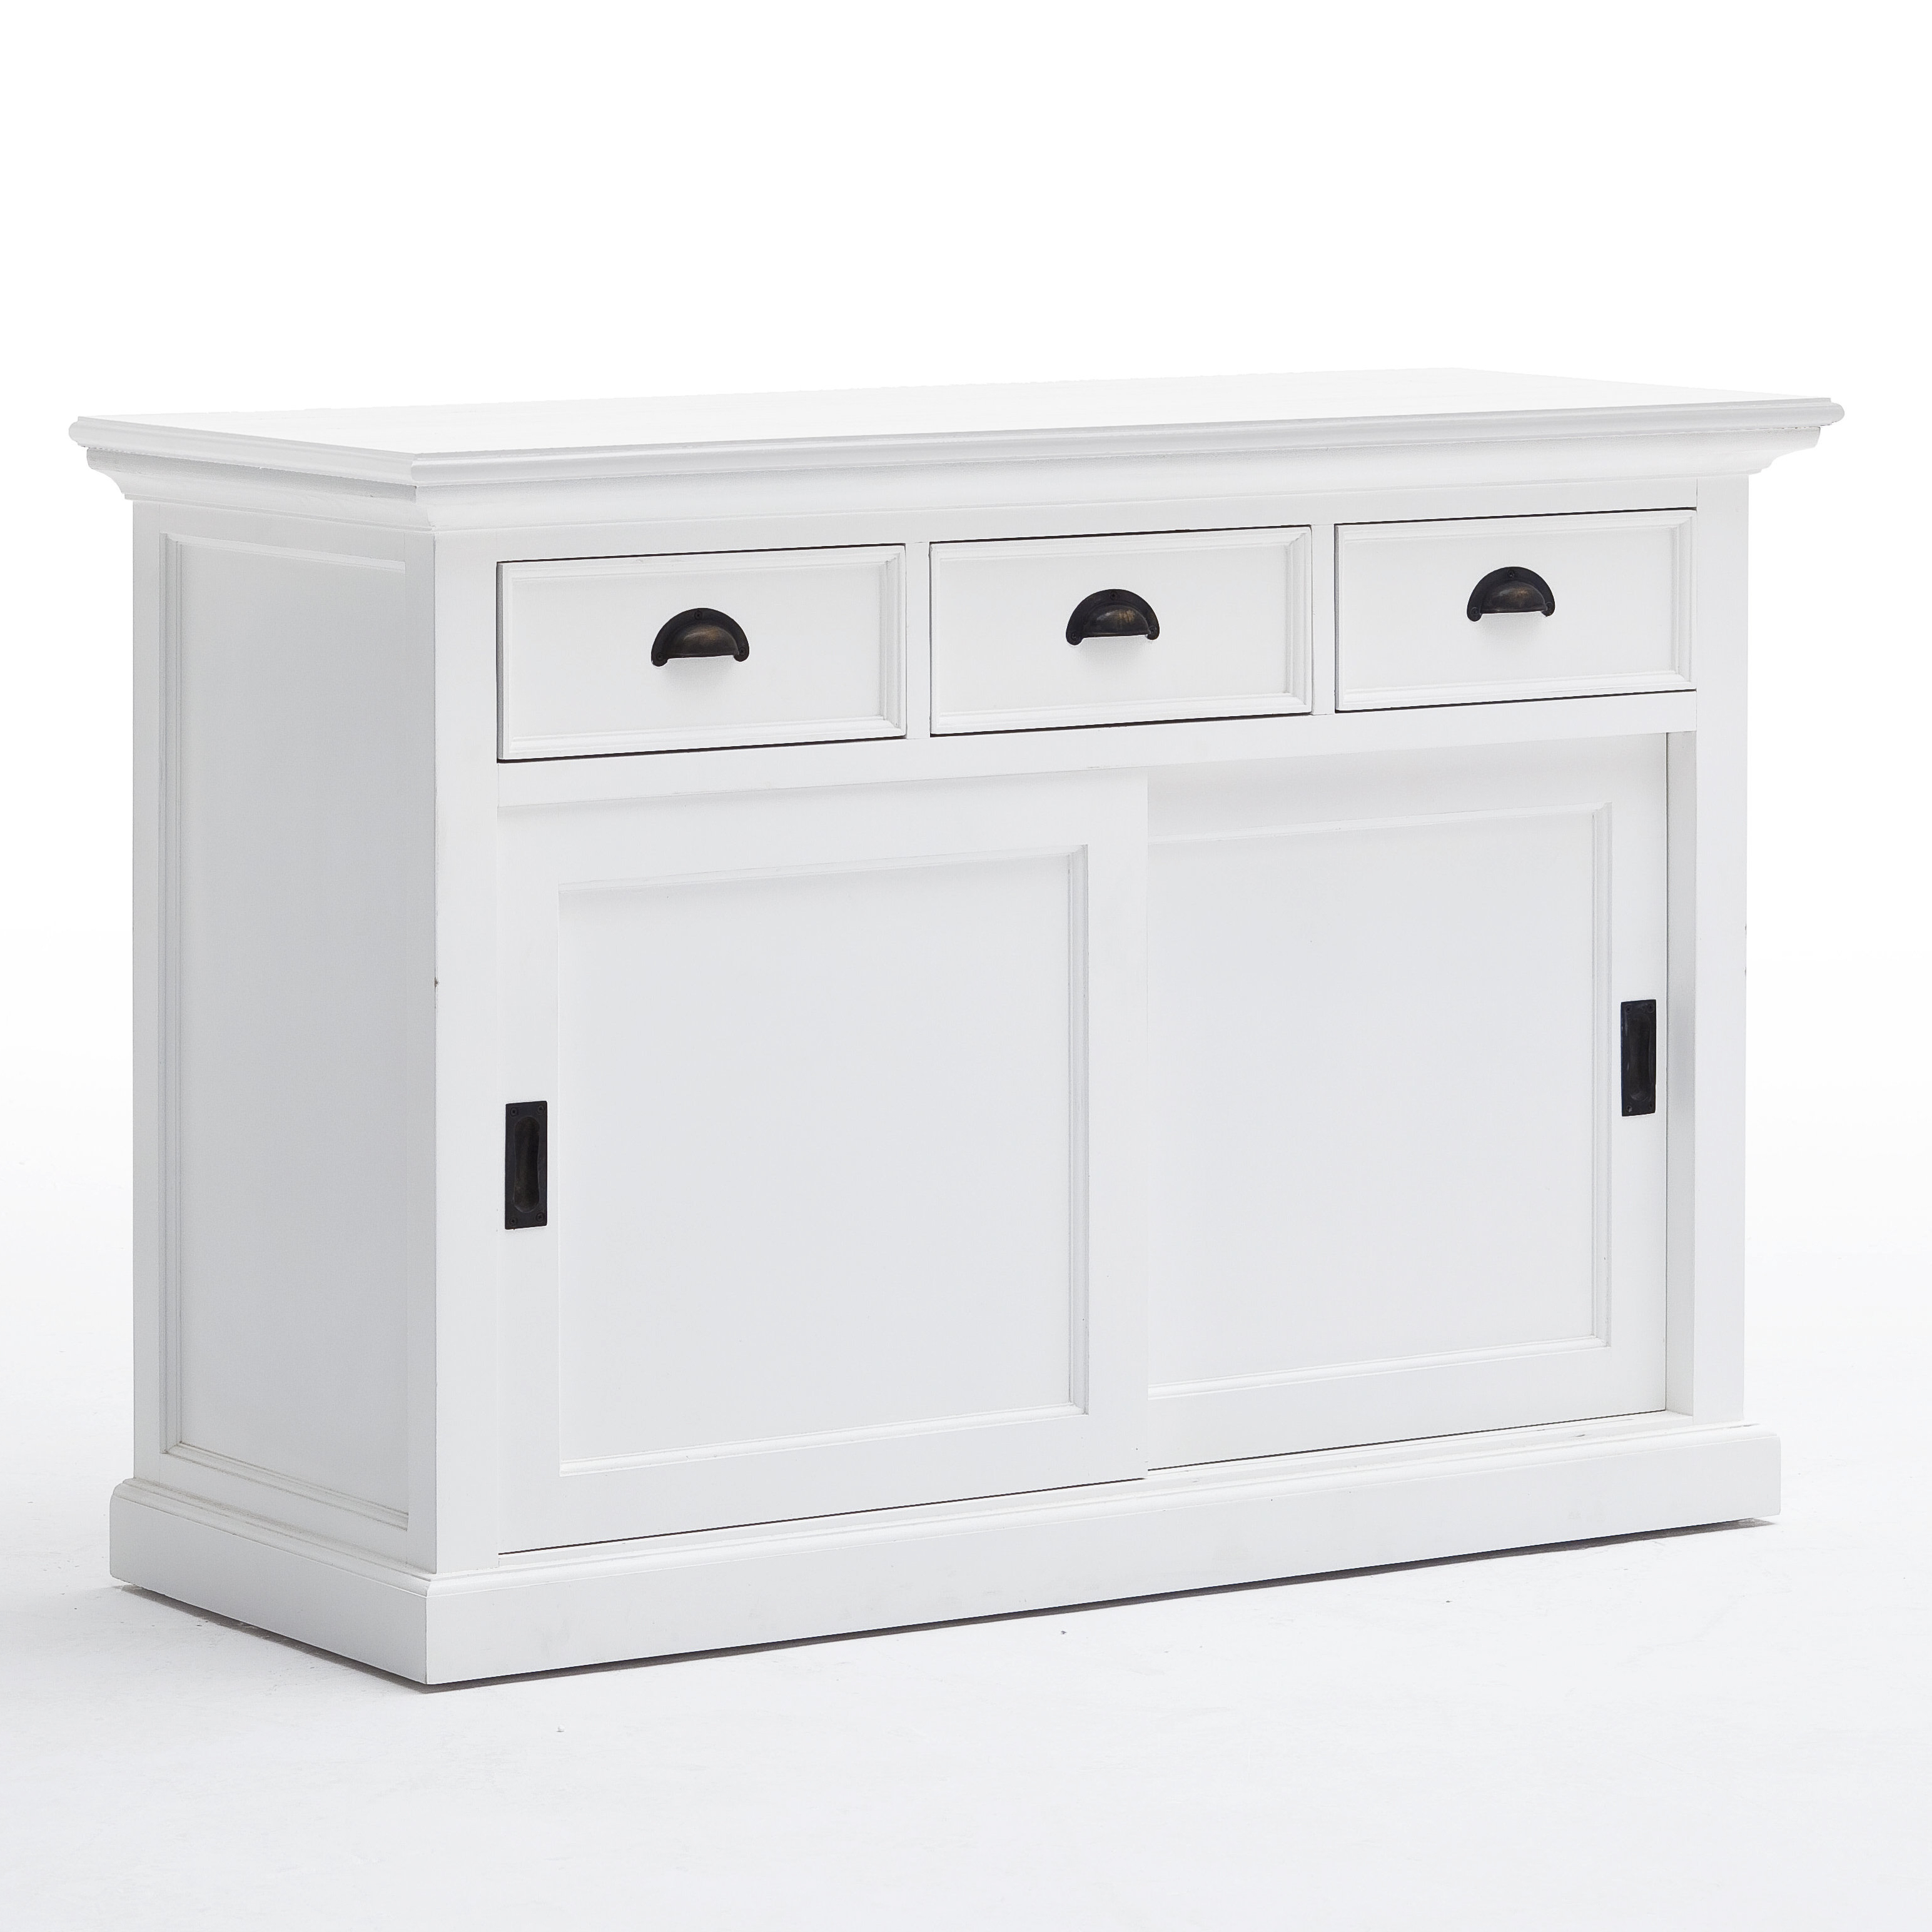 Amityville Sideboards Throughout Famous Amityville Credenza (View 5 of 20)